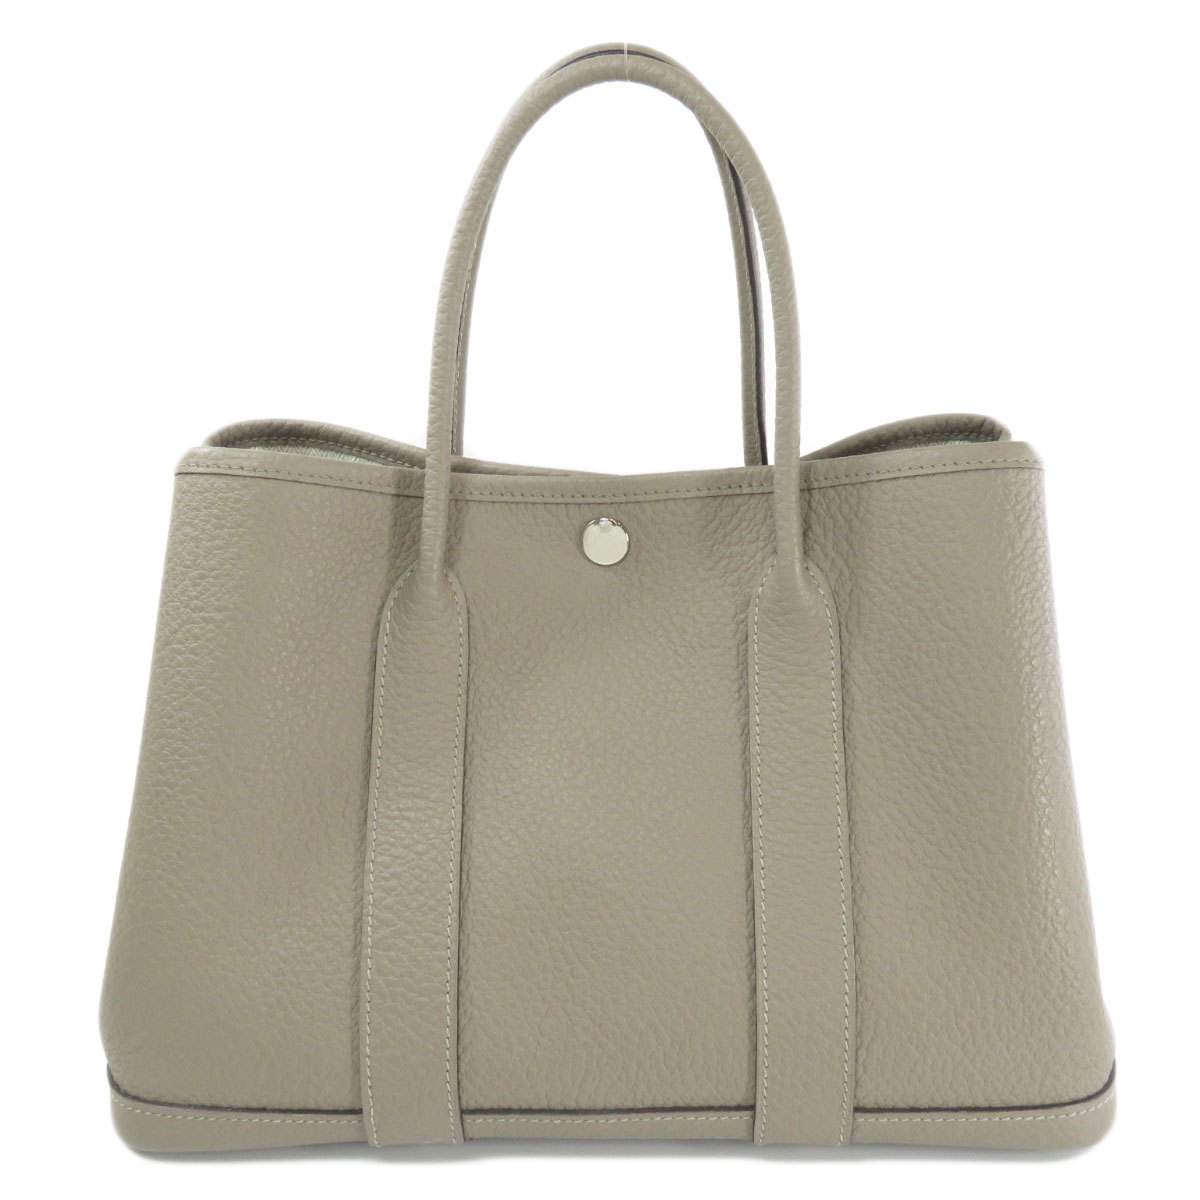 Hermes Garden Party TPM Country Tote Bag Ladies